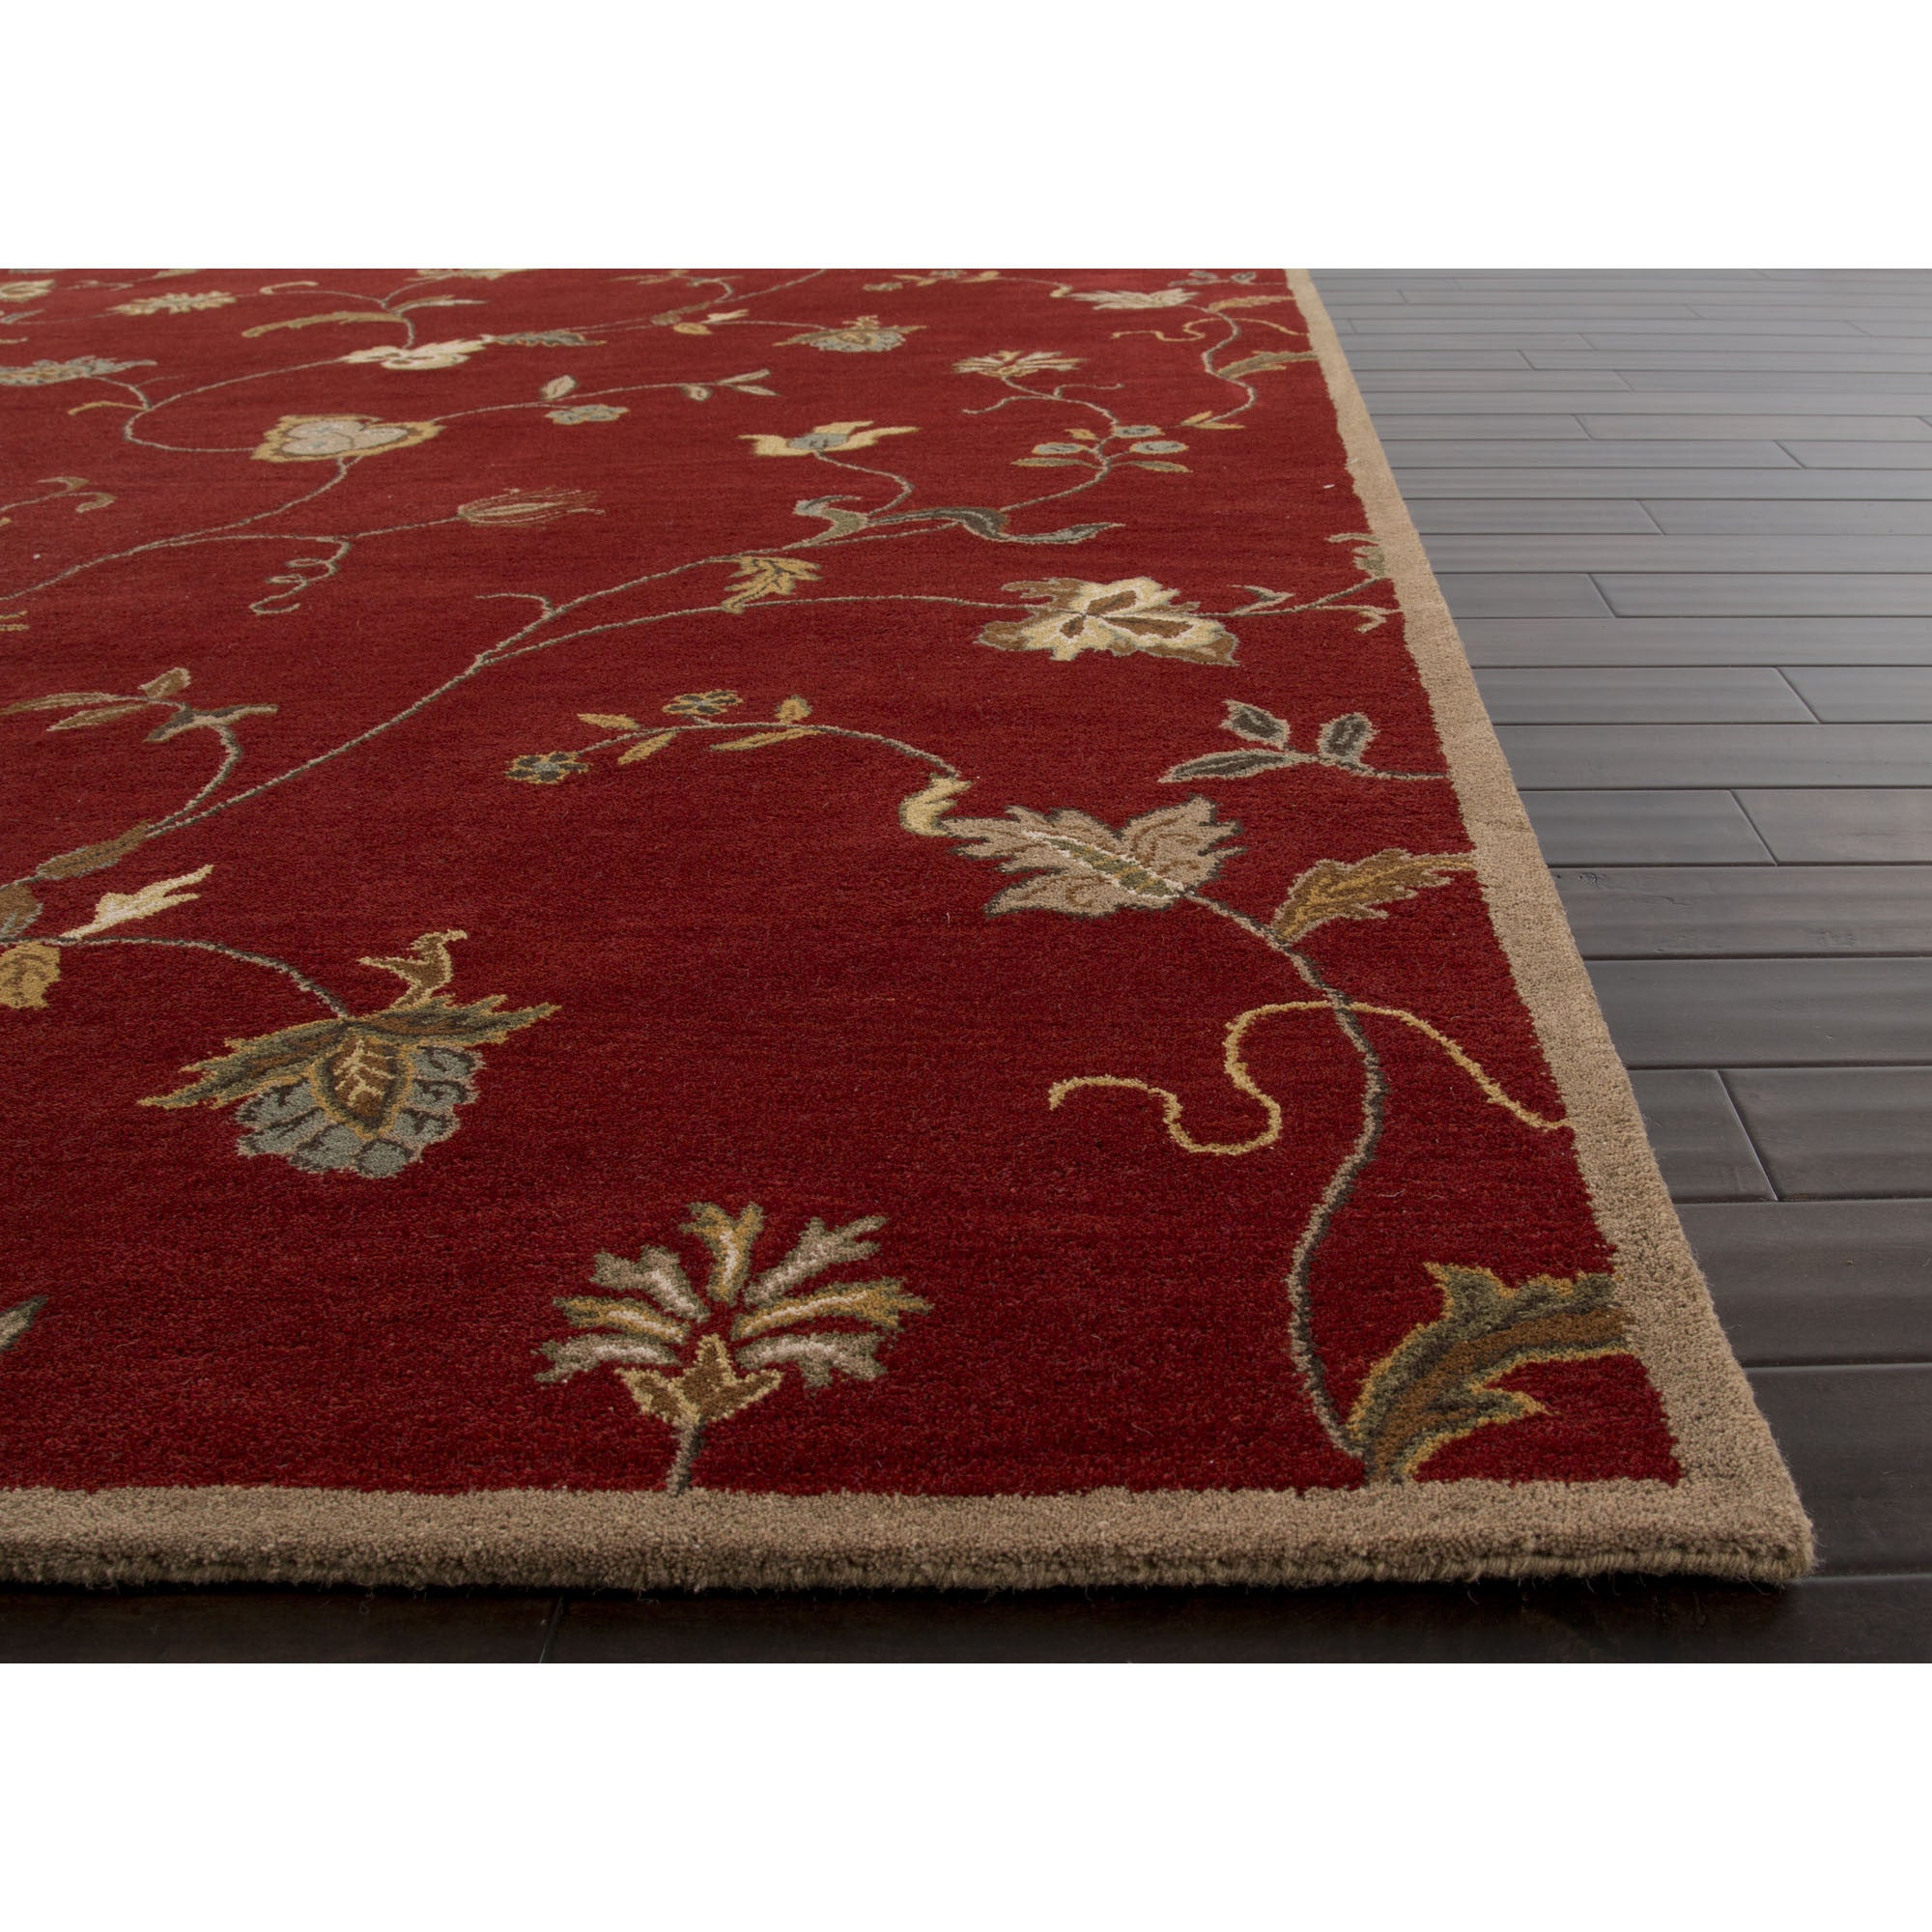 Jaipur Rugs Transitional Floral Pattern Red Ivory Wool